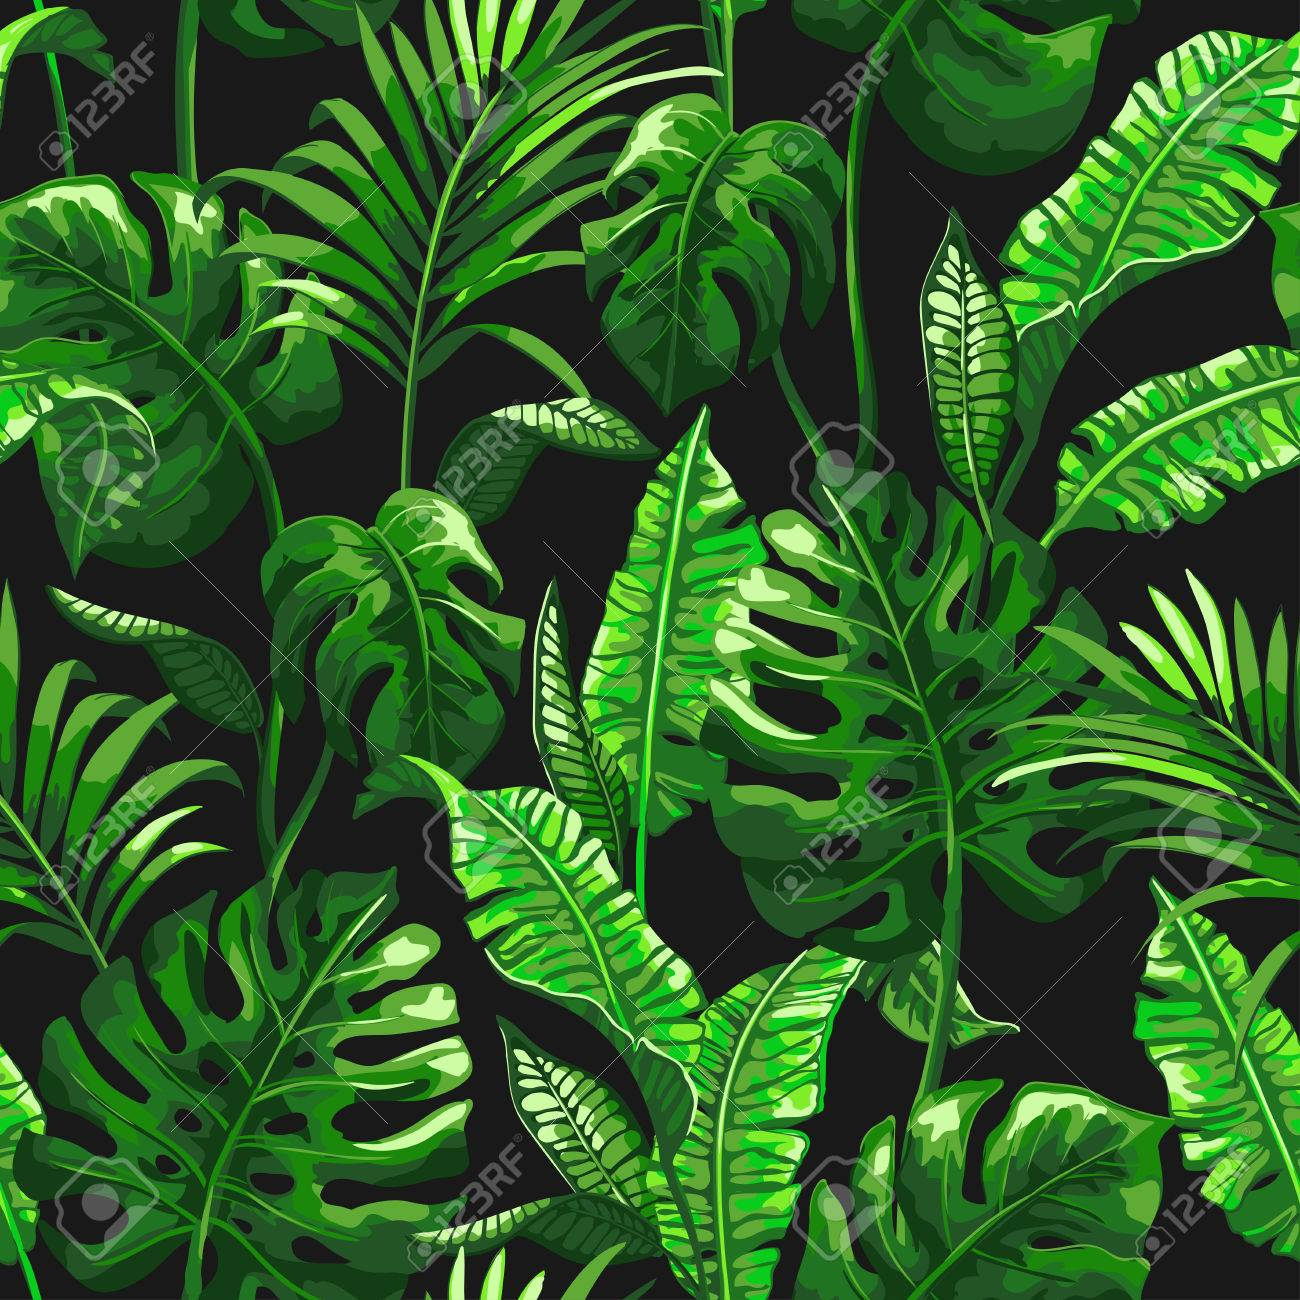 Tropical pattern with palm leaves. - 83872879